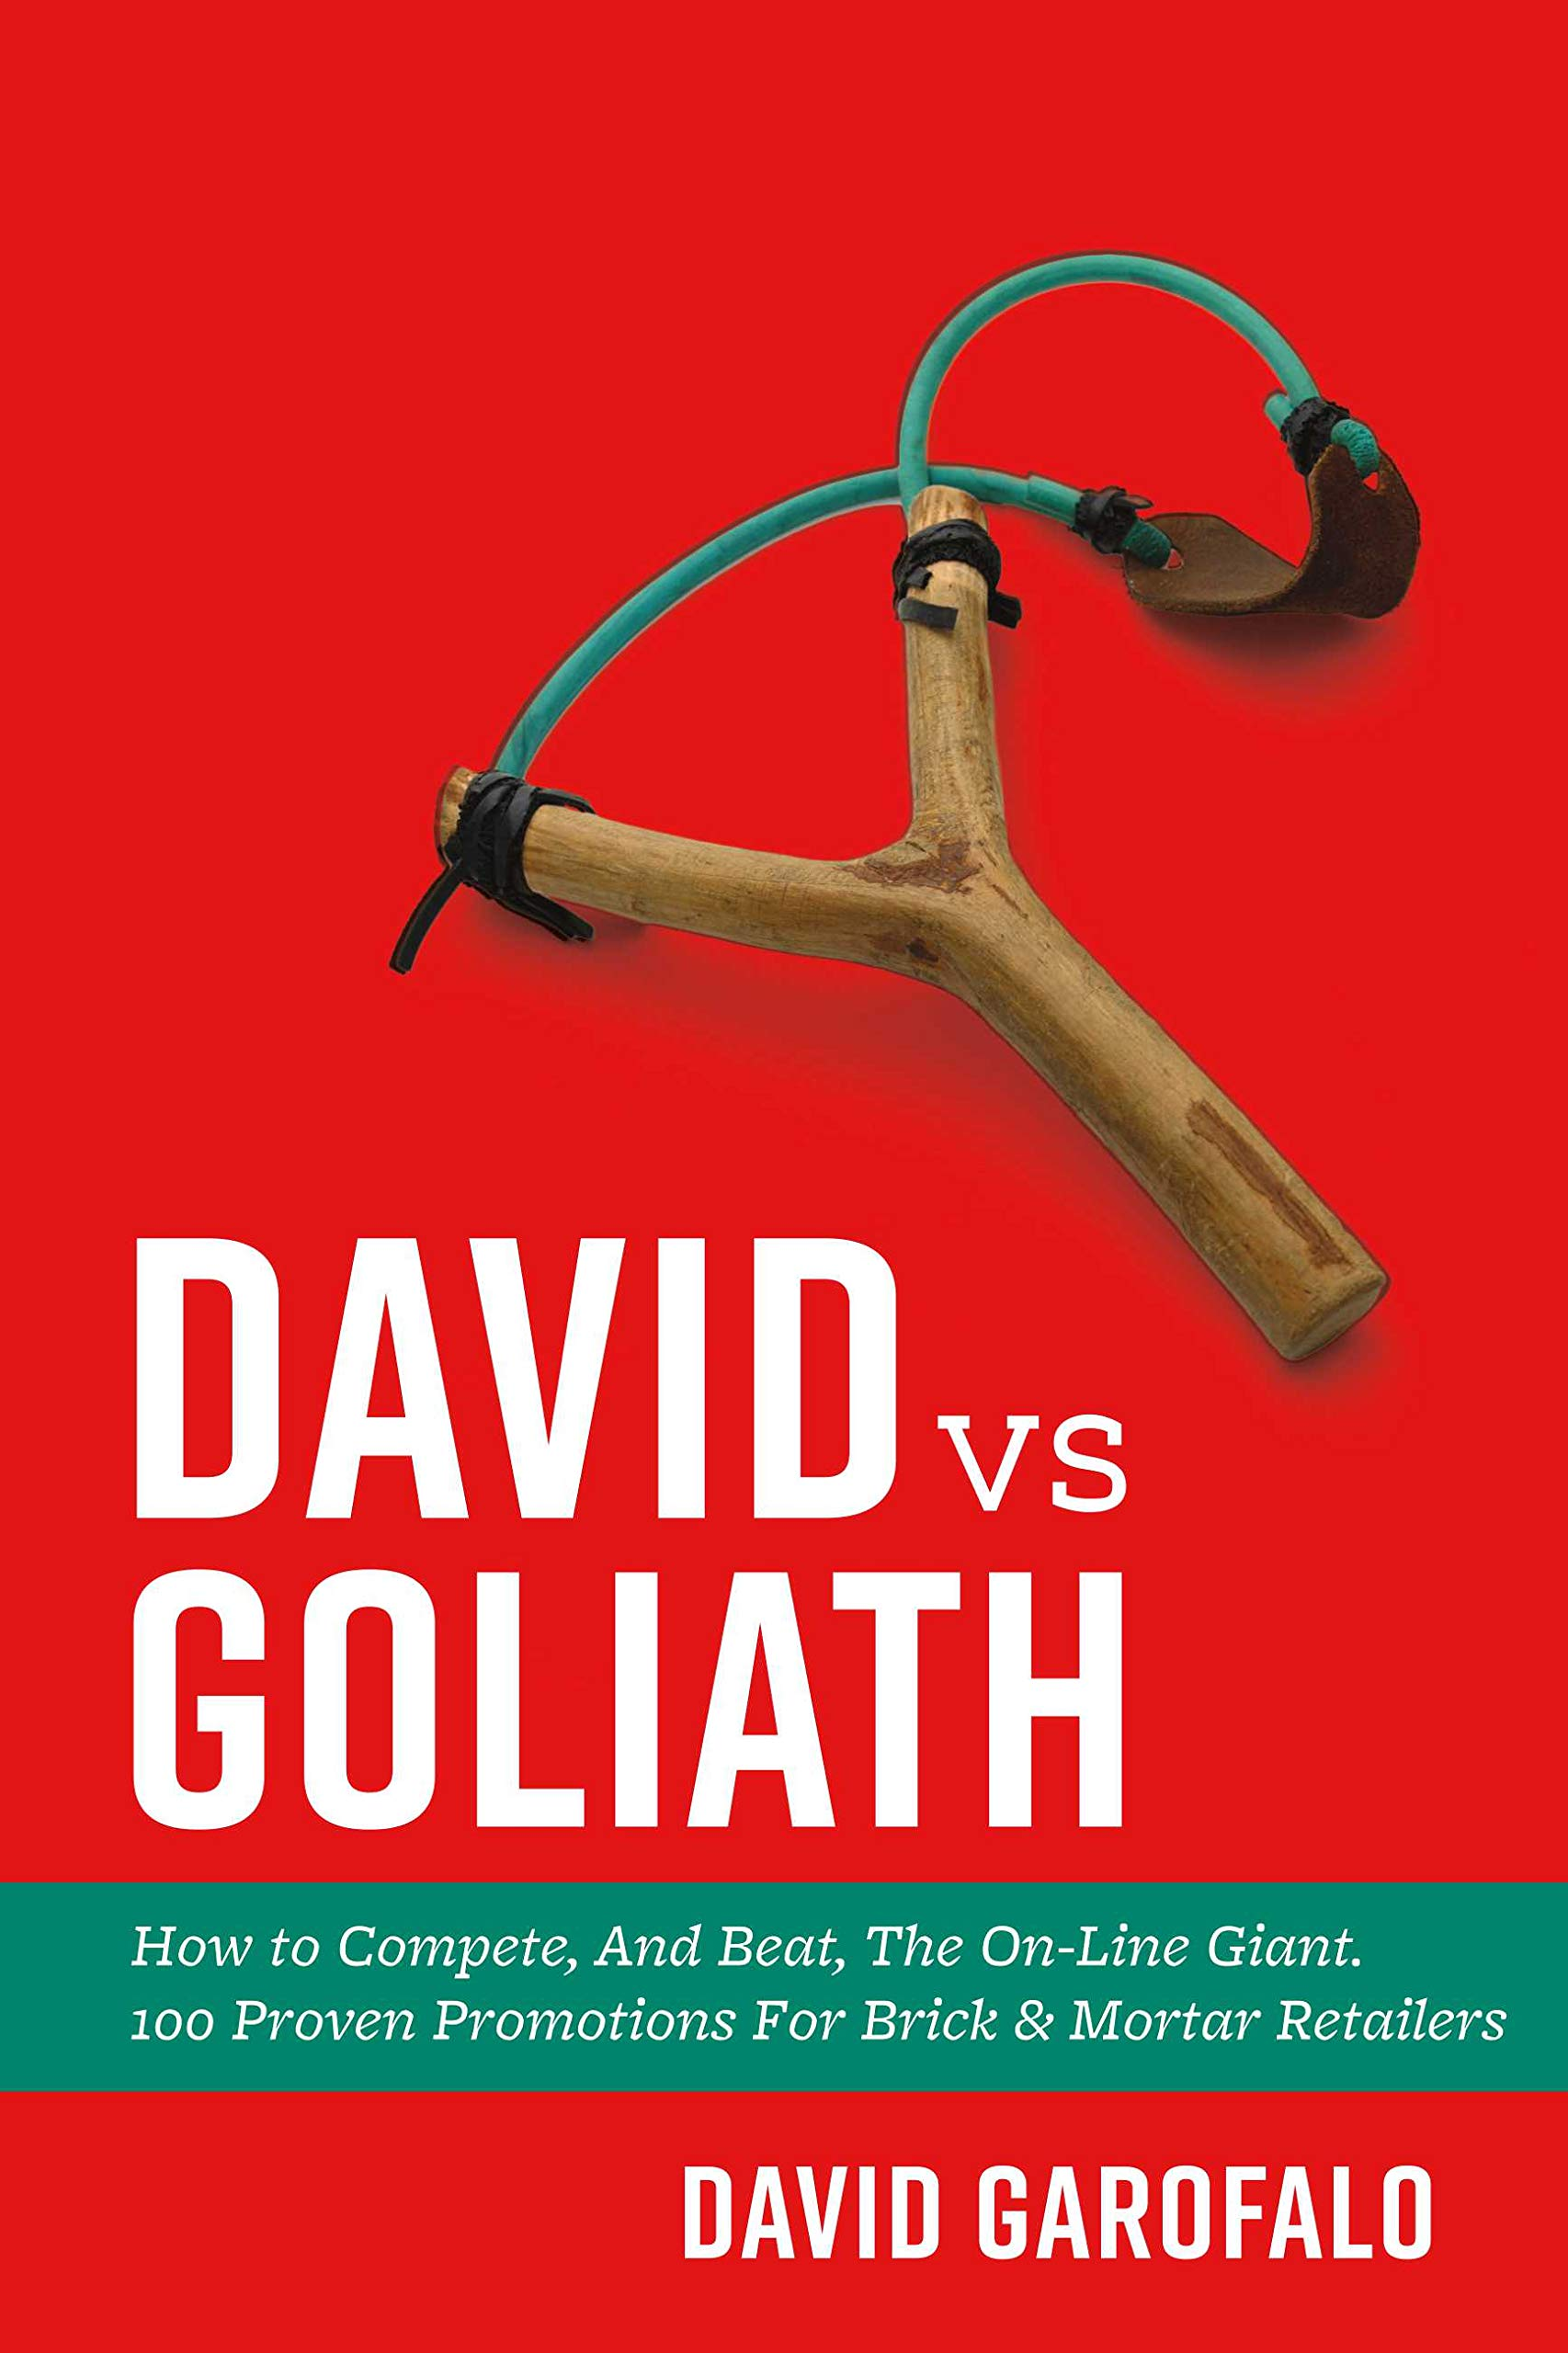 David vs Goliath: How to Compete, And Beat, The On-Line Giant. 100 Proven Promotions For Brick & Mortar Retailers